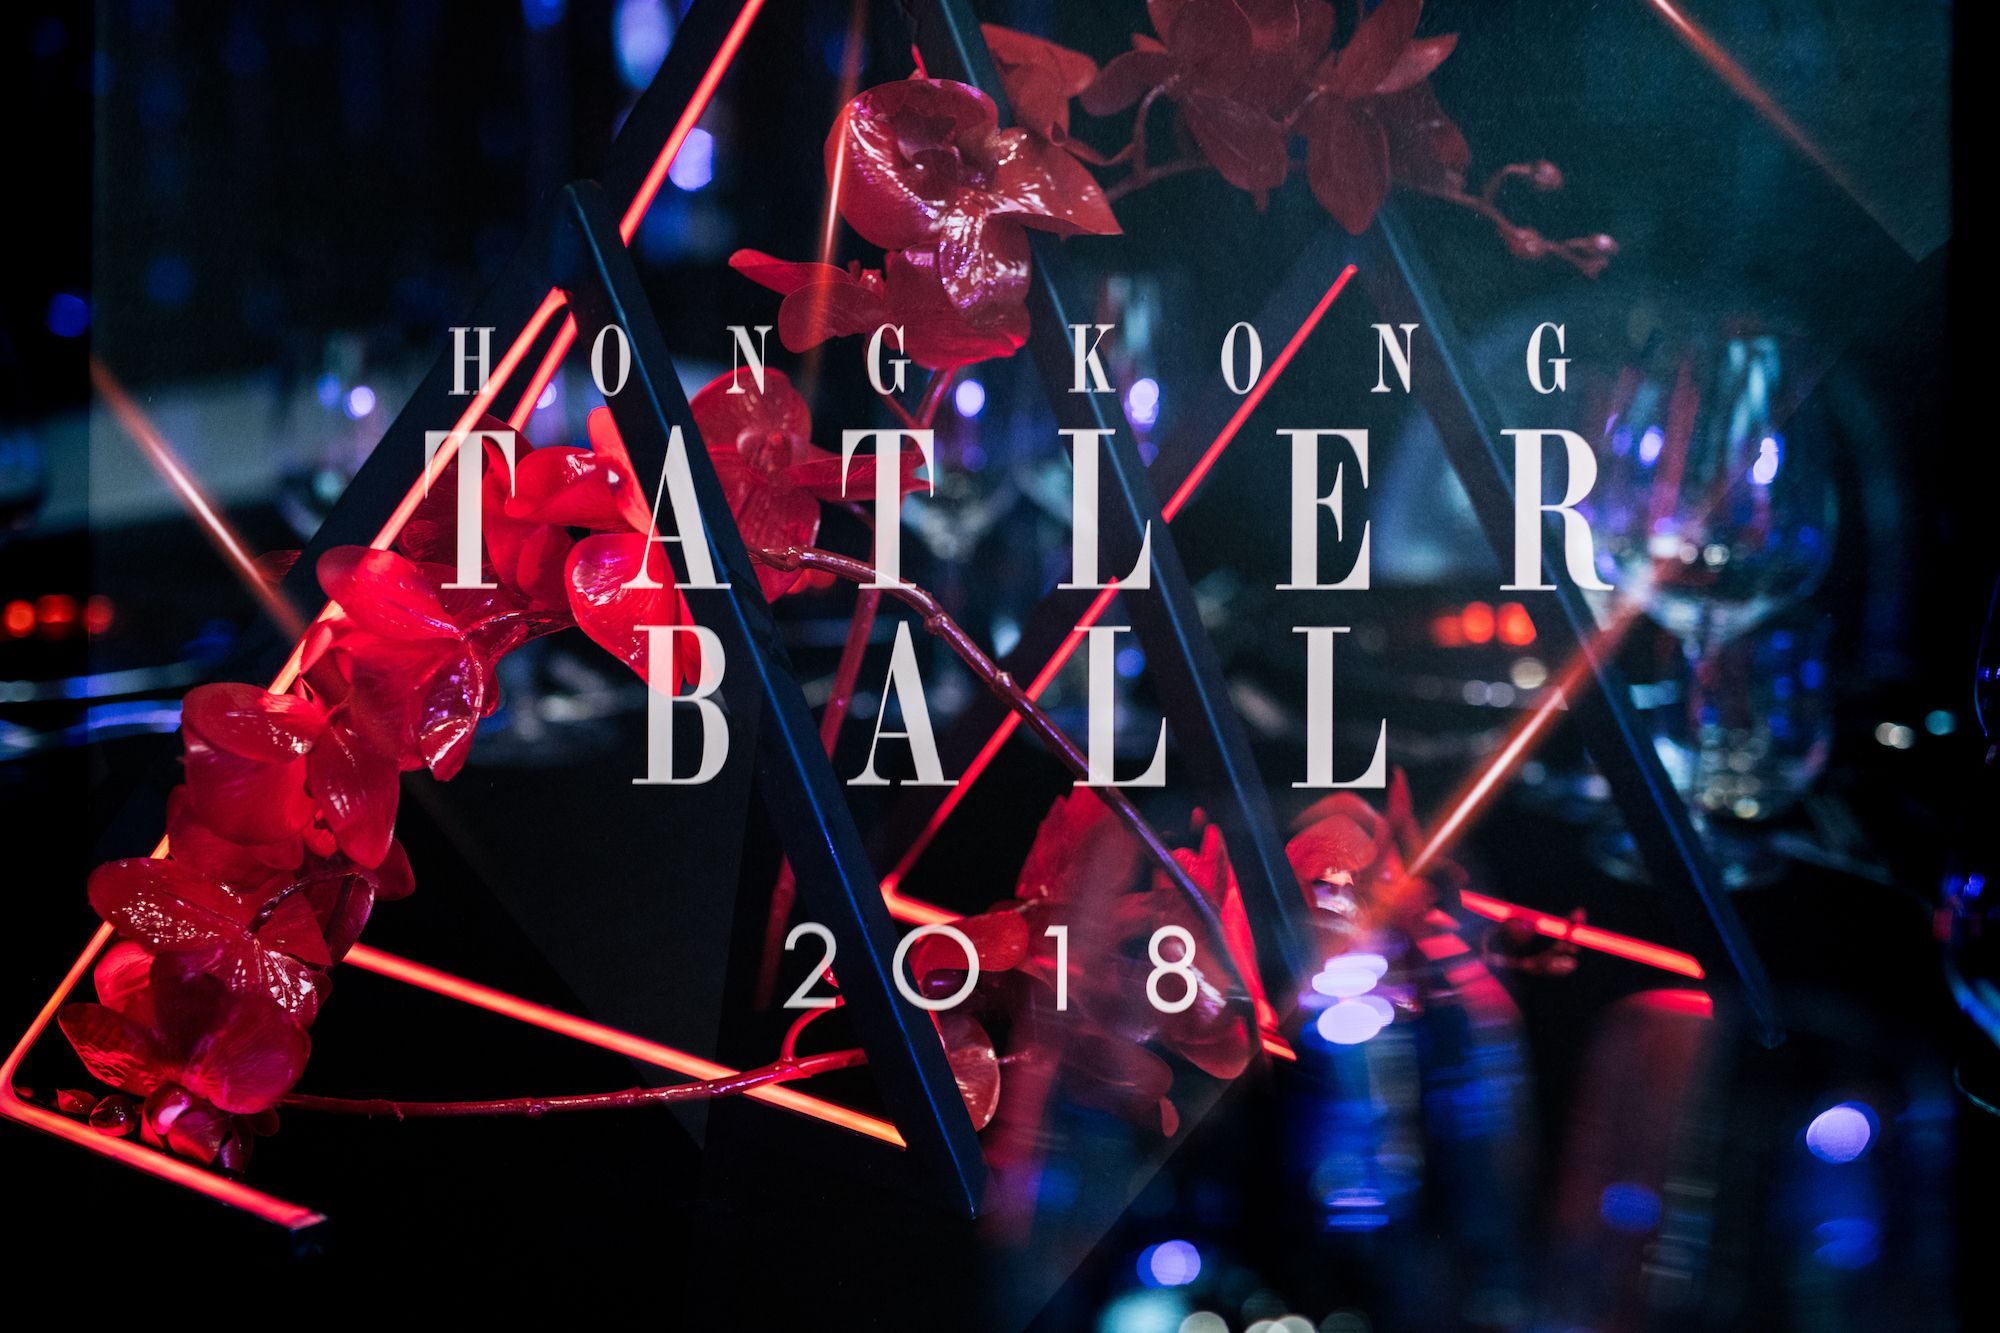 Hong Kong Tatler Ball 2018 Highlights